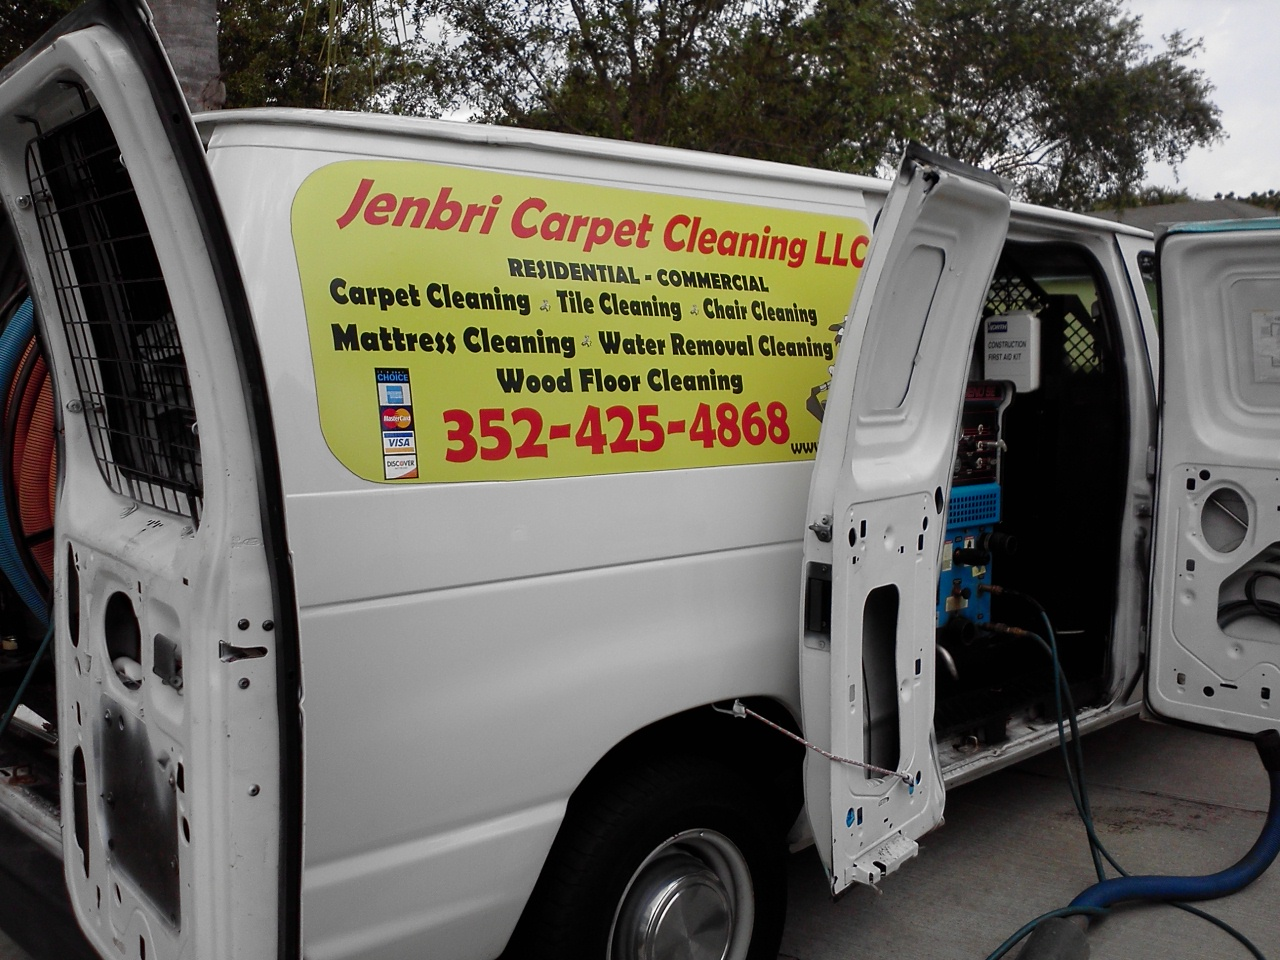 Online Scheduler For Jenbri Carpet Cleaning Llc In